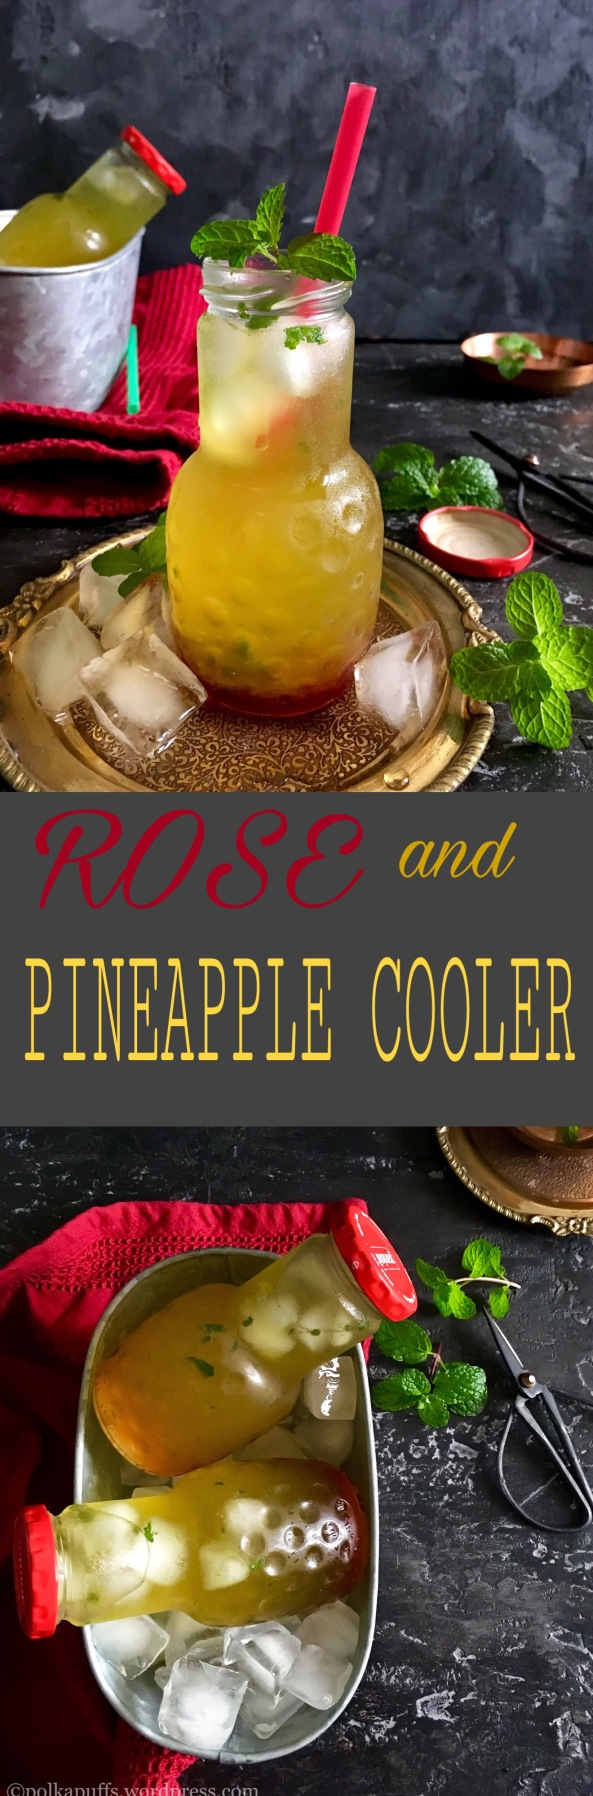 Rose and Pineapple Cooler | Vegan